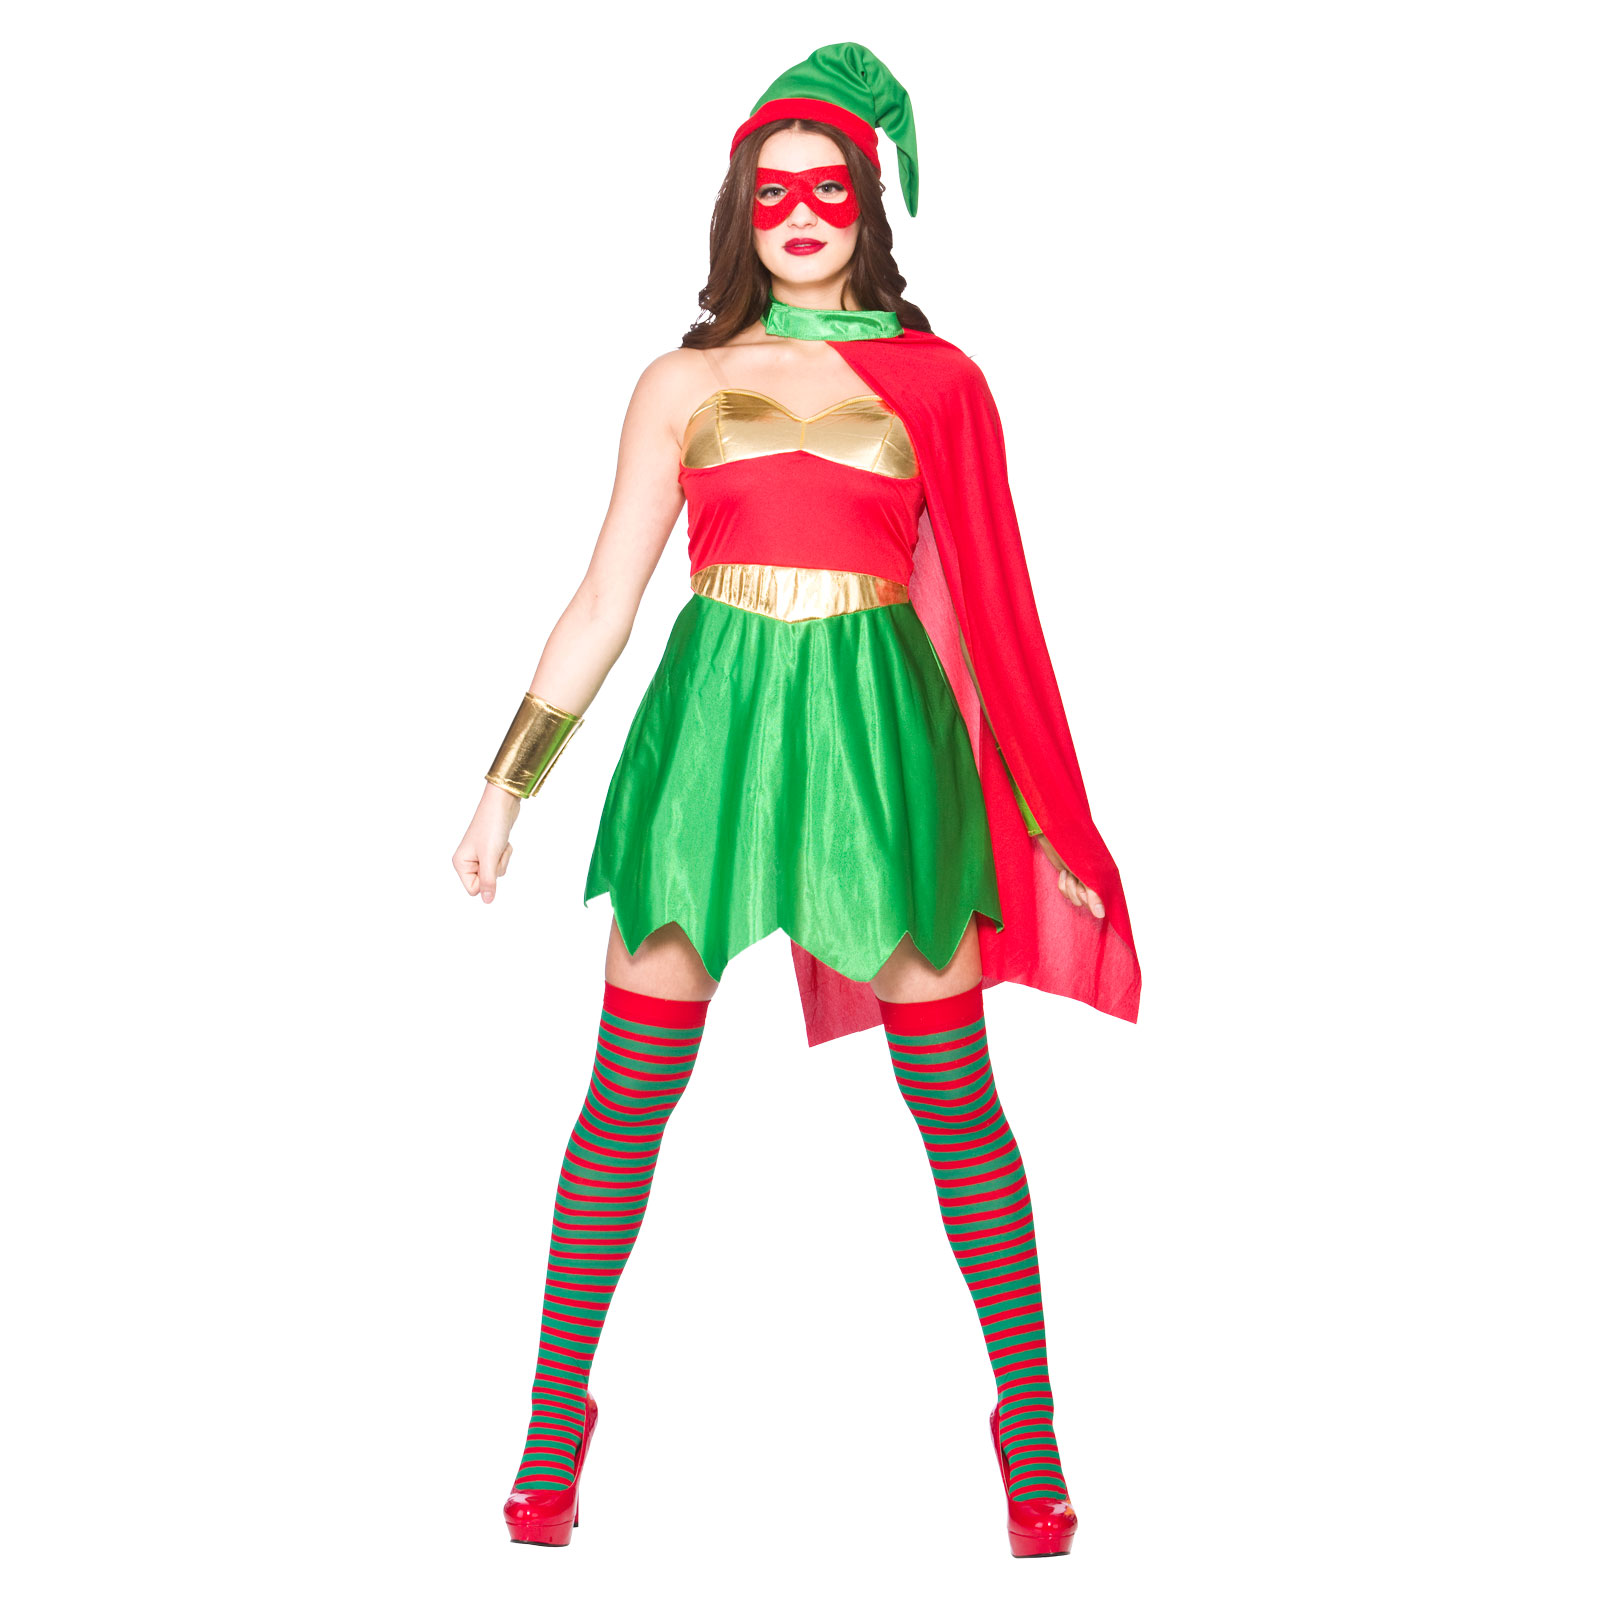 Christmas dress up - Ladies Super Hero Elf Fun Christmas Festive Fancy Dress Up Party Costume Outfit